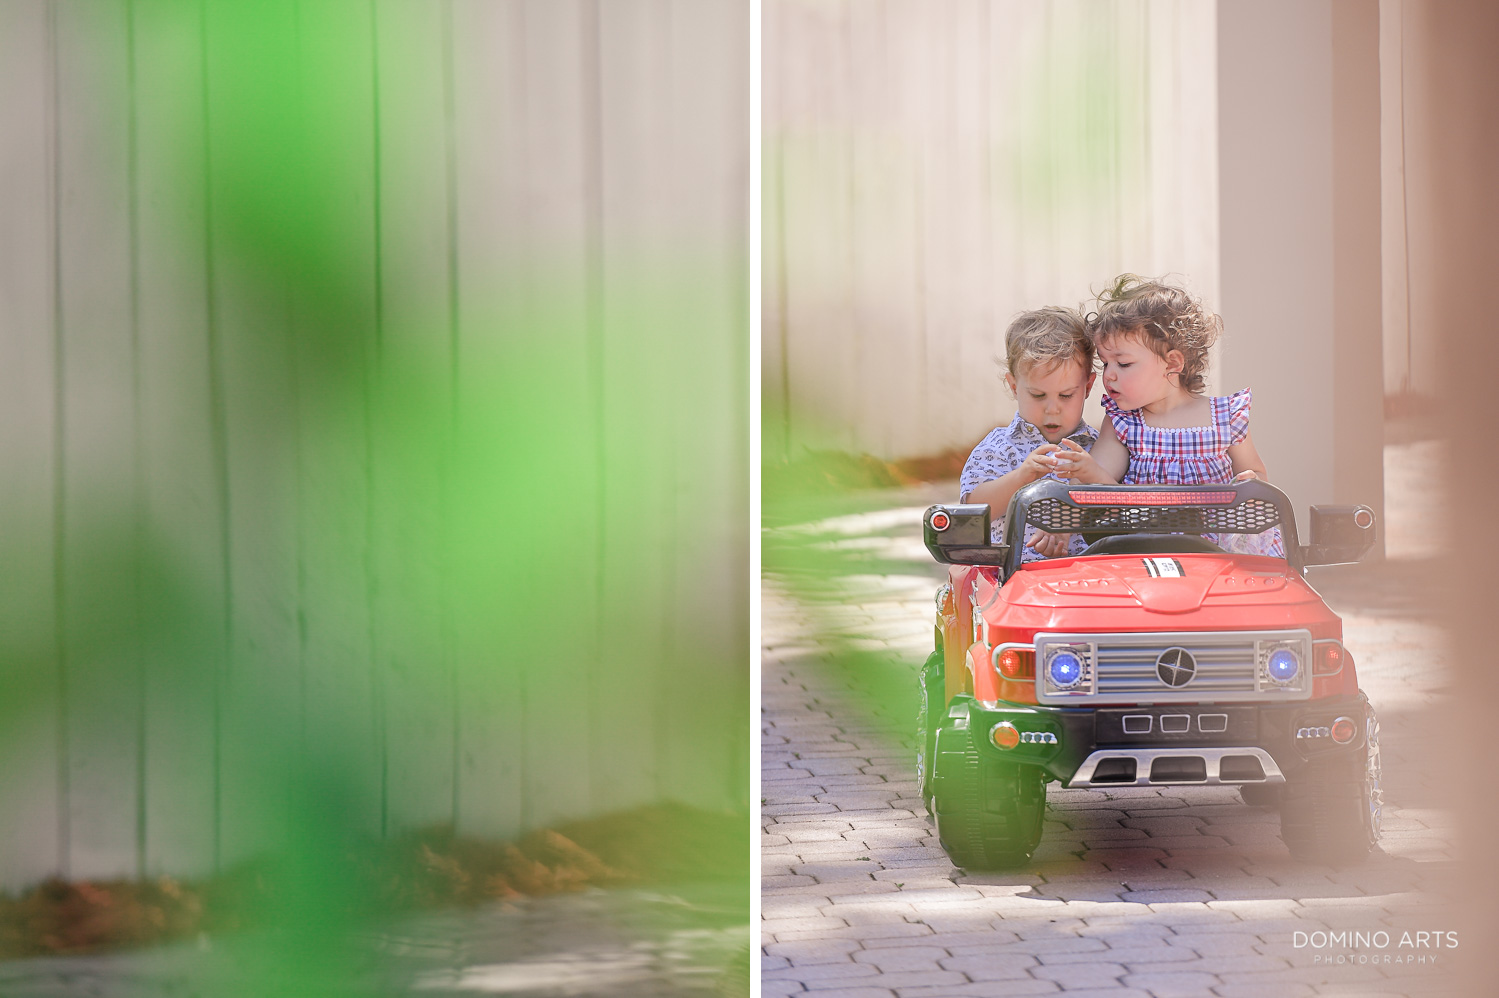 Cute children professional photography kids in a red car